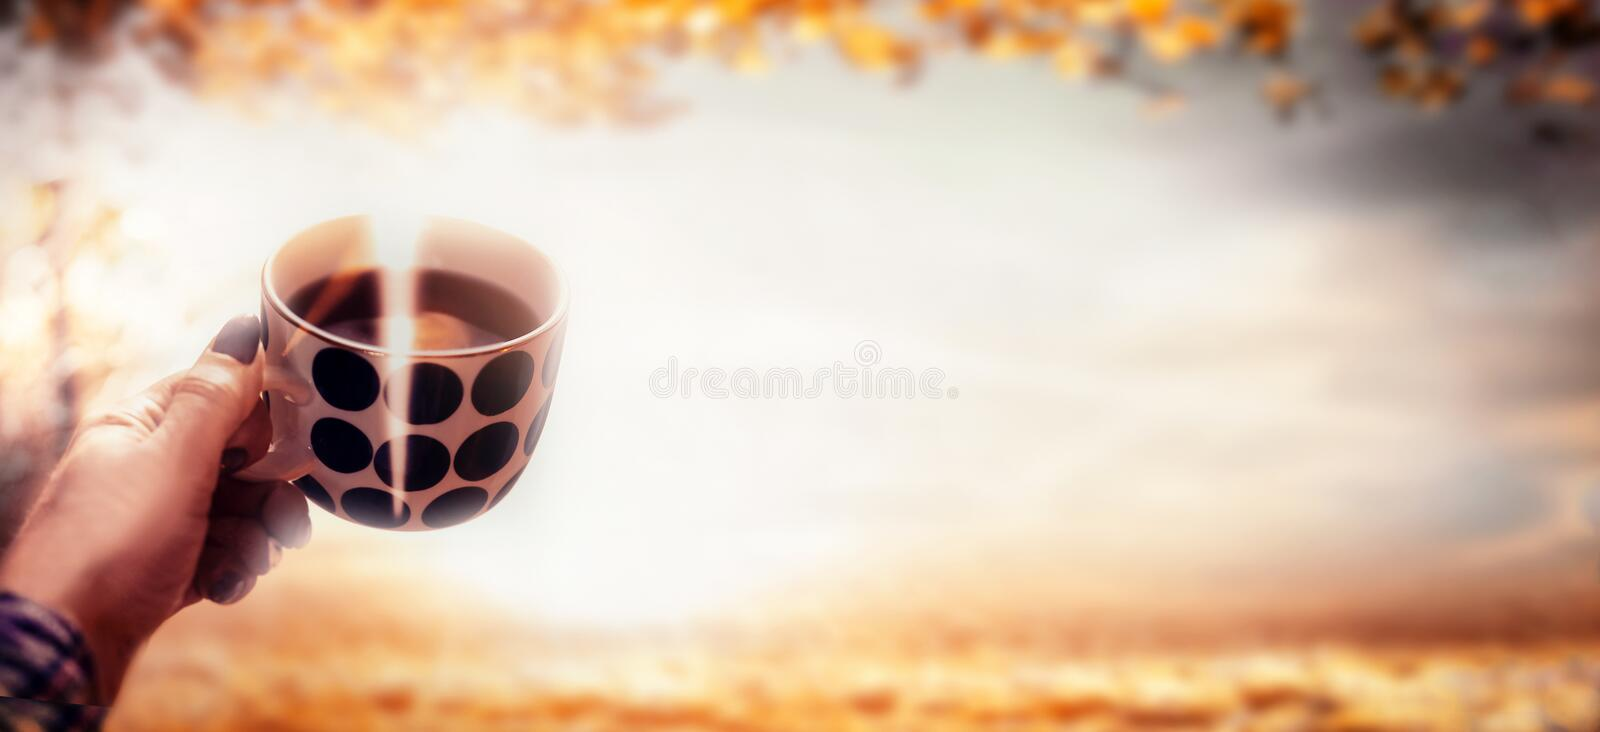 Woman hand holding polka dot cup with steamed hot coffee at autumn nature landscape with fall foliage and sunlight. Outdoor. royalty free stock photo